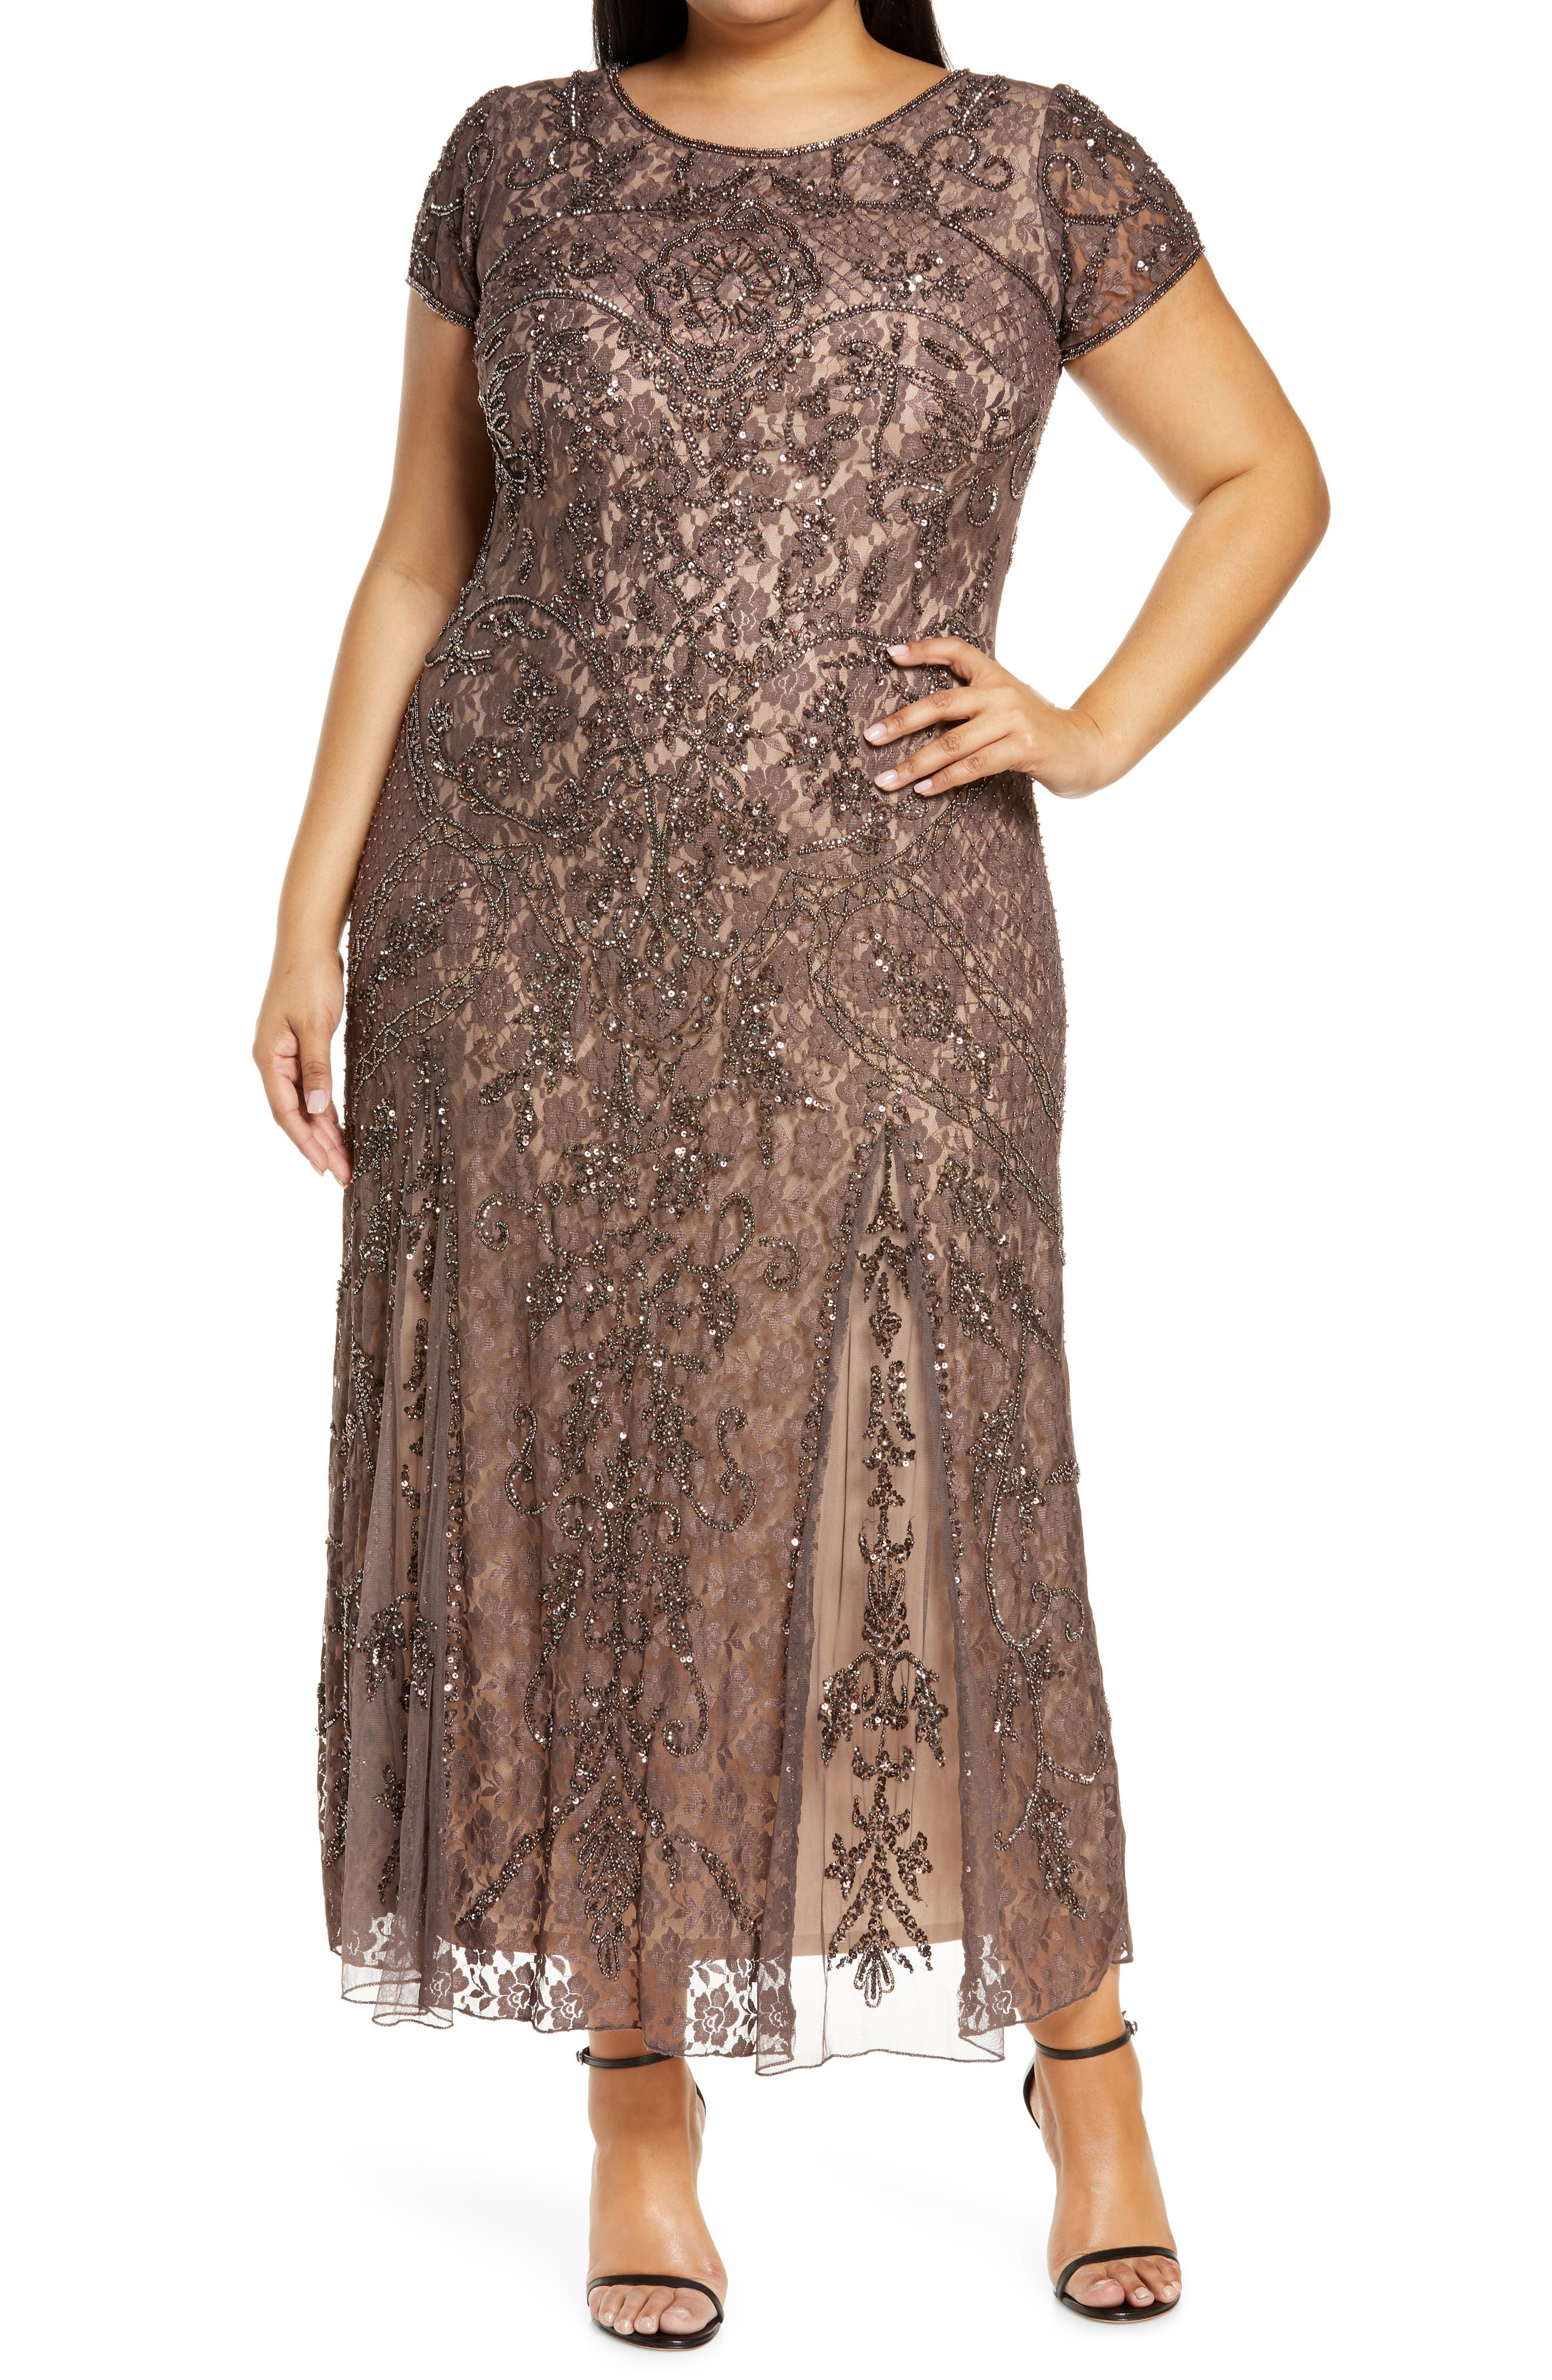 1920s Plus Size Flapper Dresses, Gatsby Dresses, Flapper Costumes Plus Size Womens Pisarro Nights Embellished Lace A-Line Dress Size 18W - Brown $129.00 AT vintagedancer.com